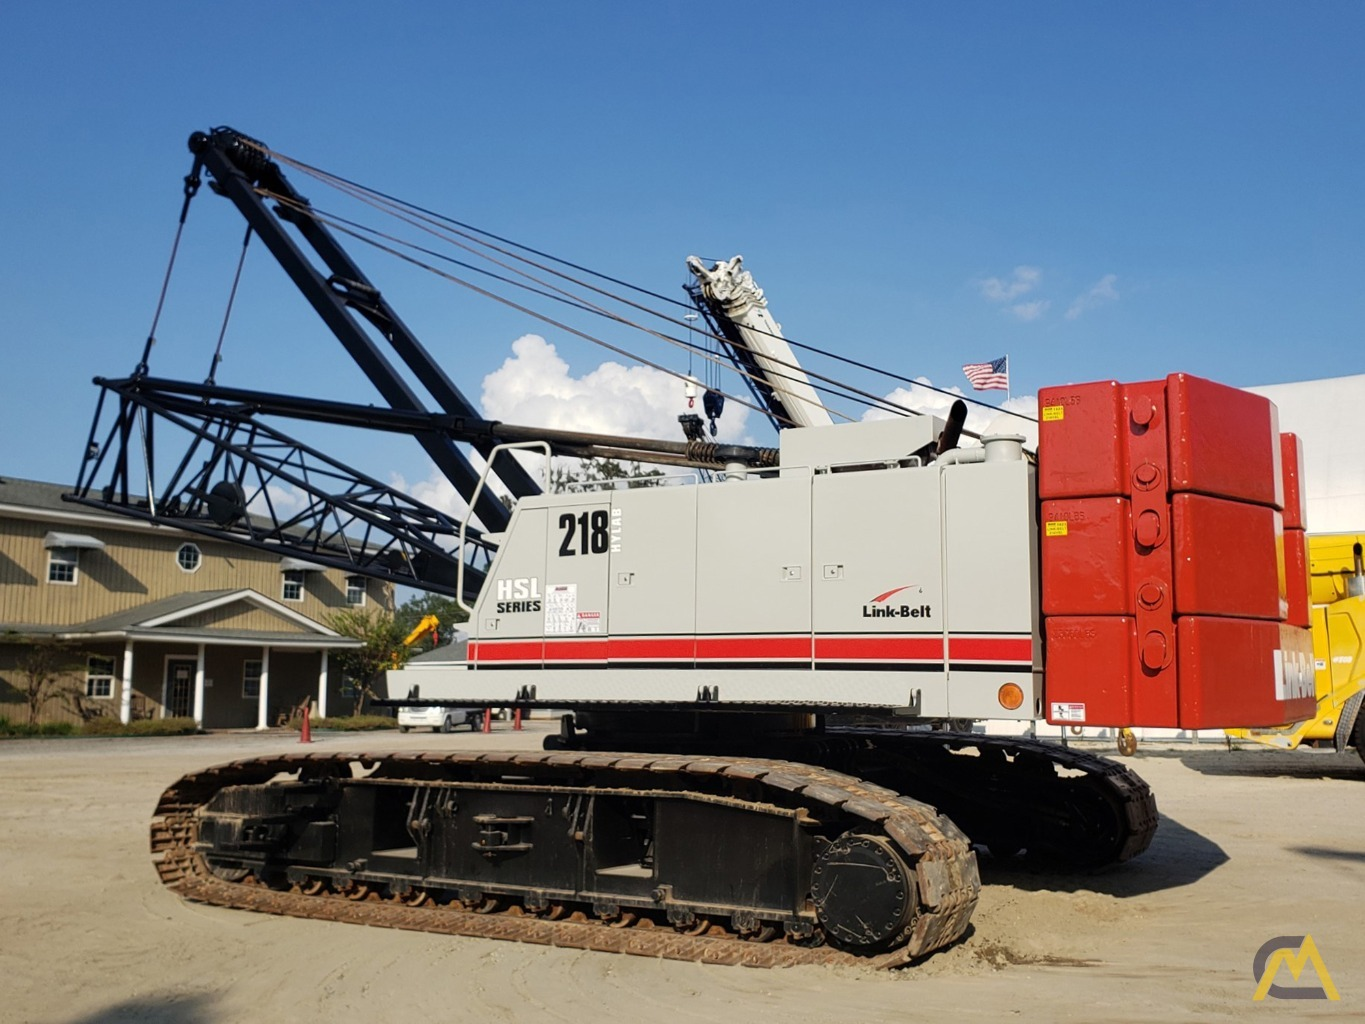 2012 Link-Belt 218HSL 110-Ton Lattice Boom Crawler Crane 1